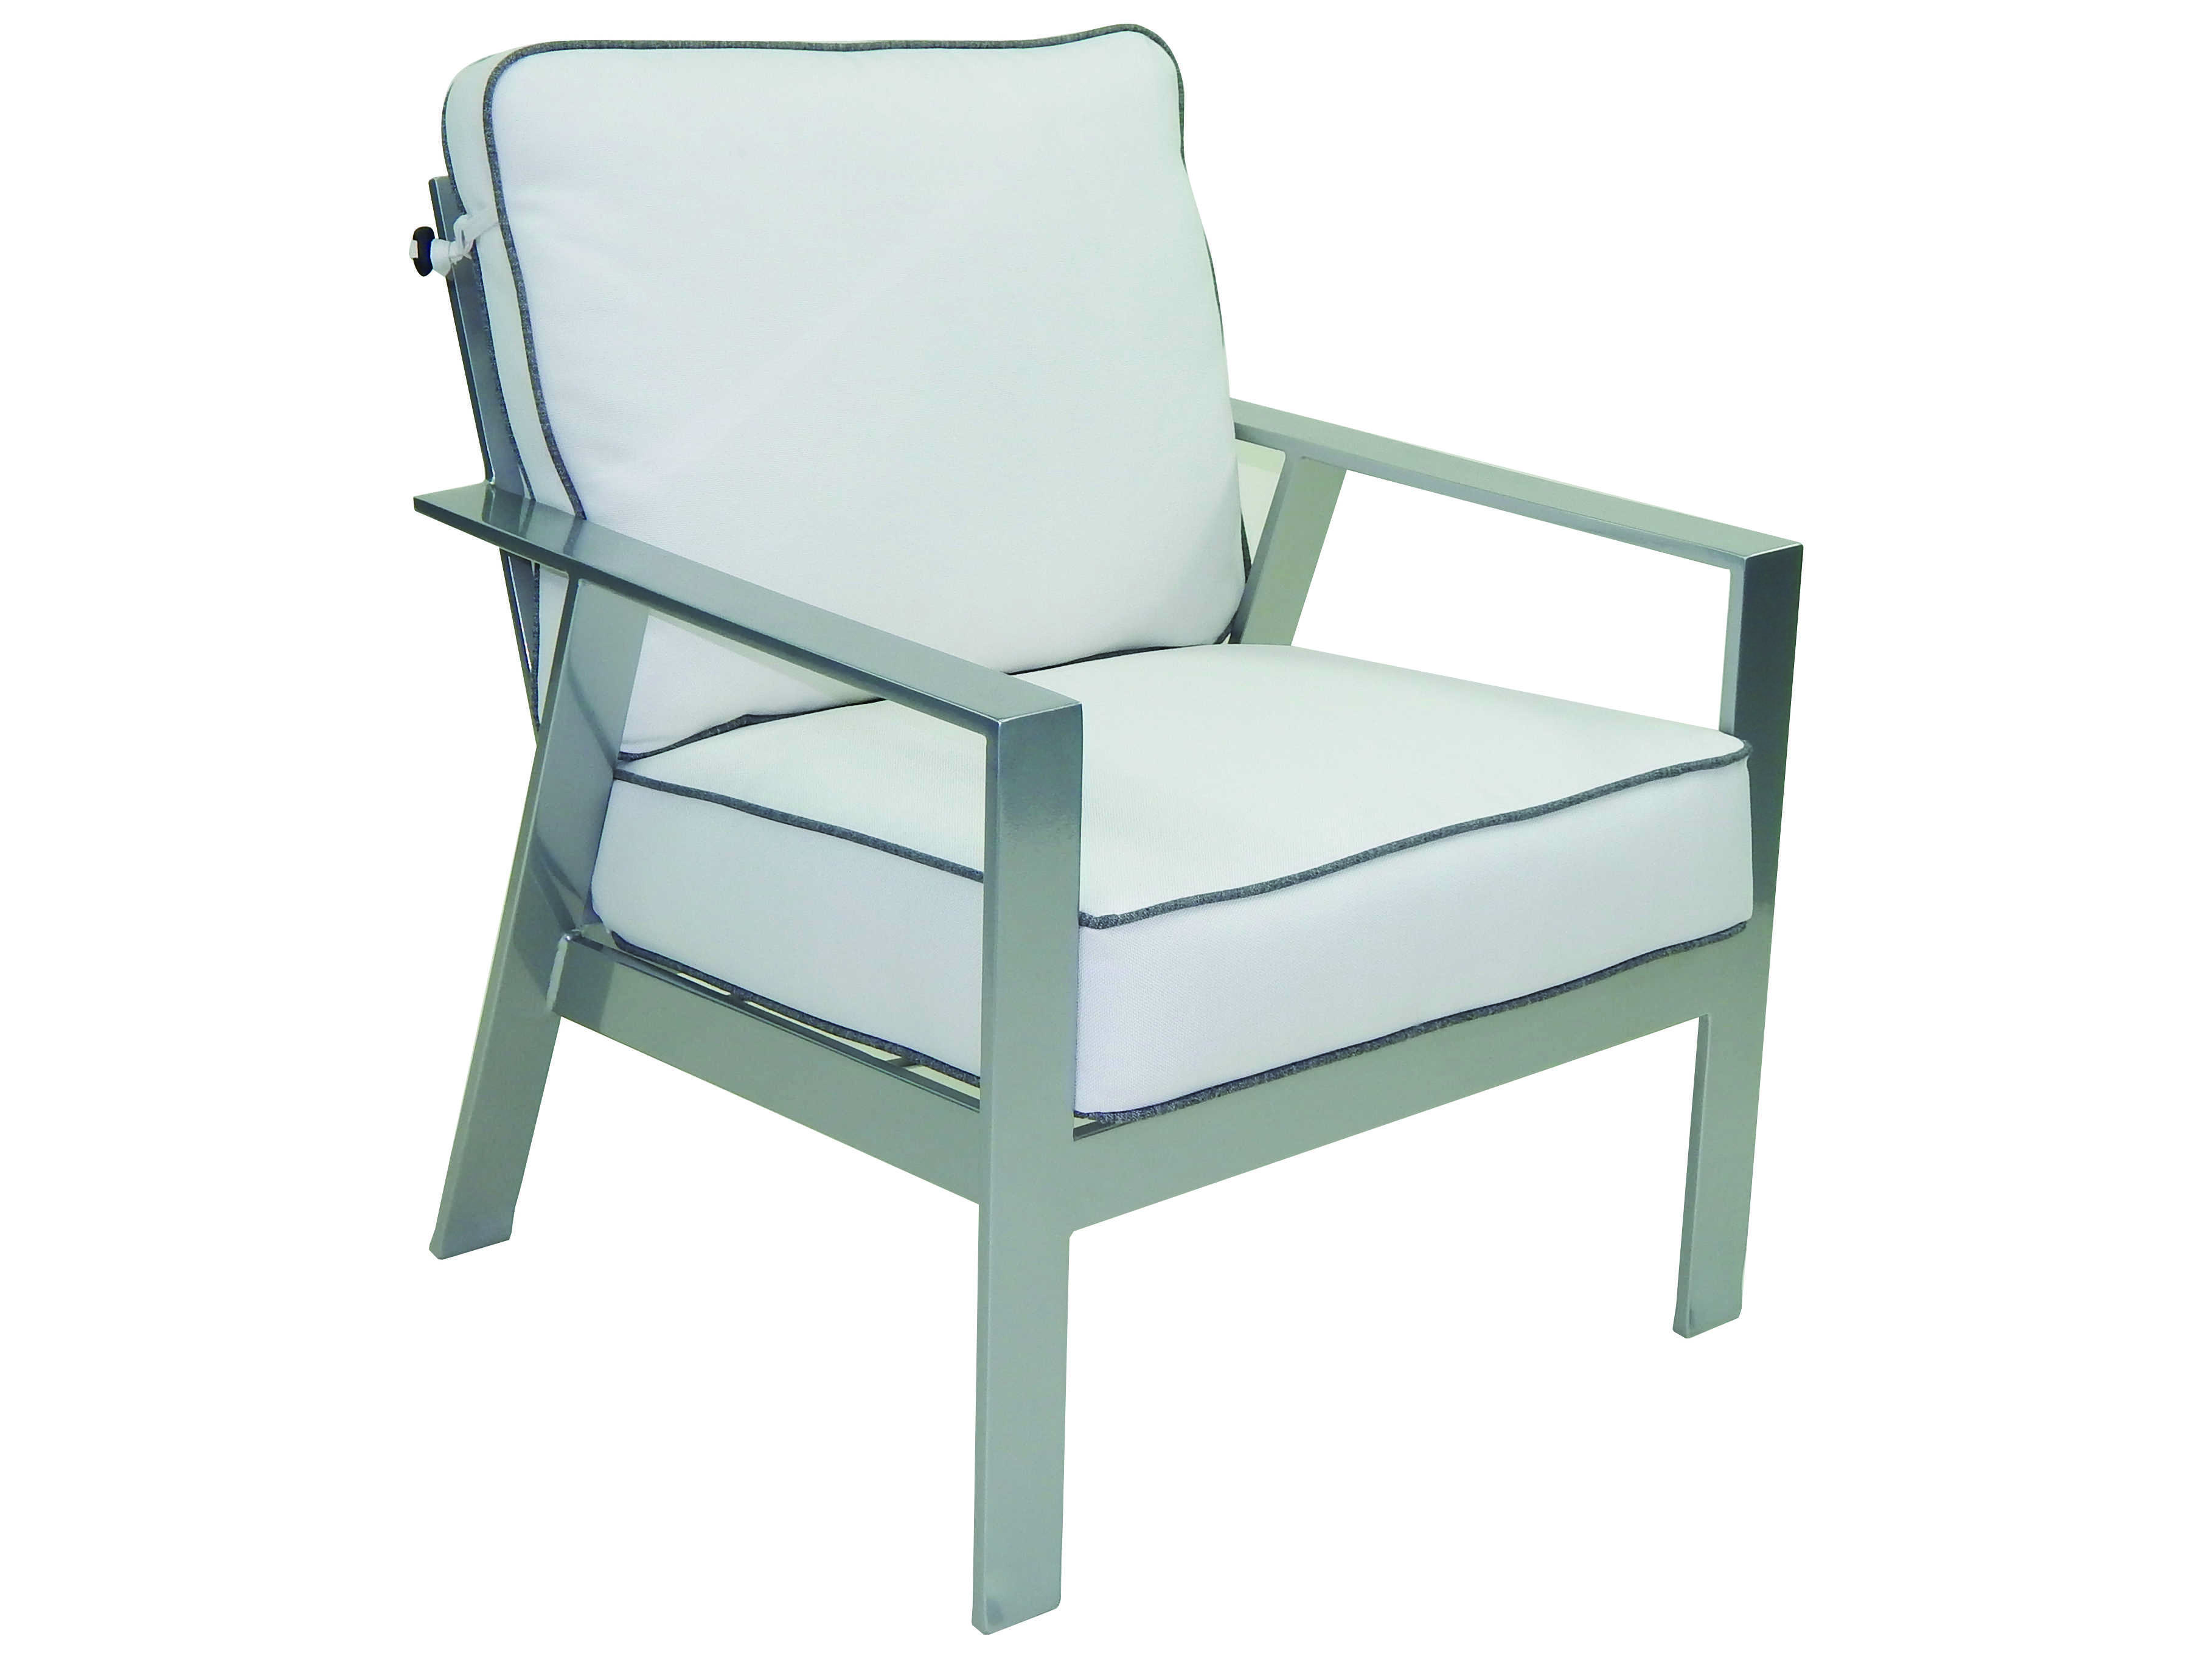 Deep Seating Patio Chairs Castelle Trento Deep Seating Cushion Cast Aluminum Lounge